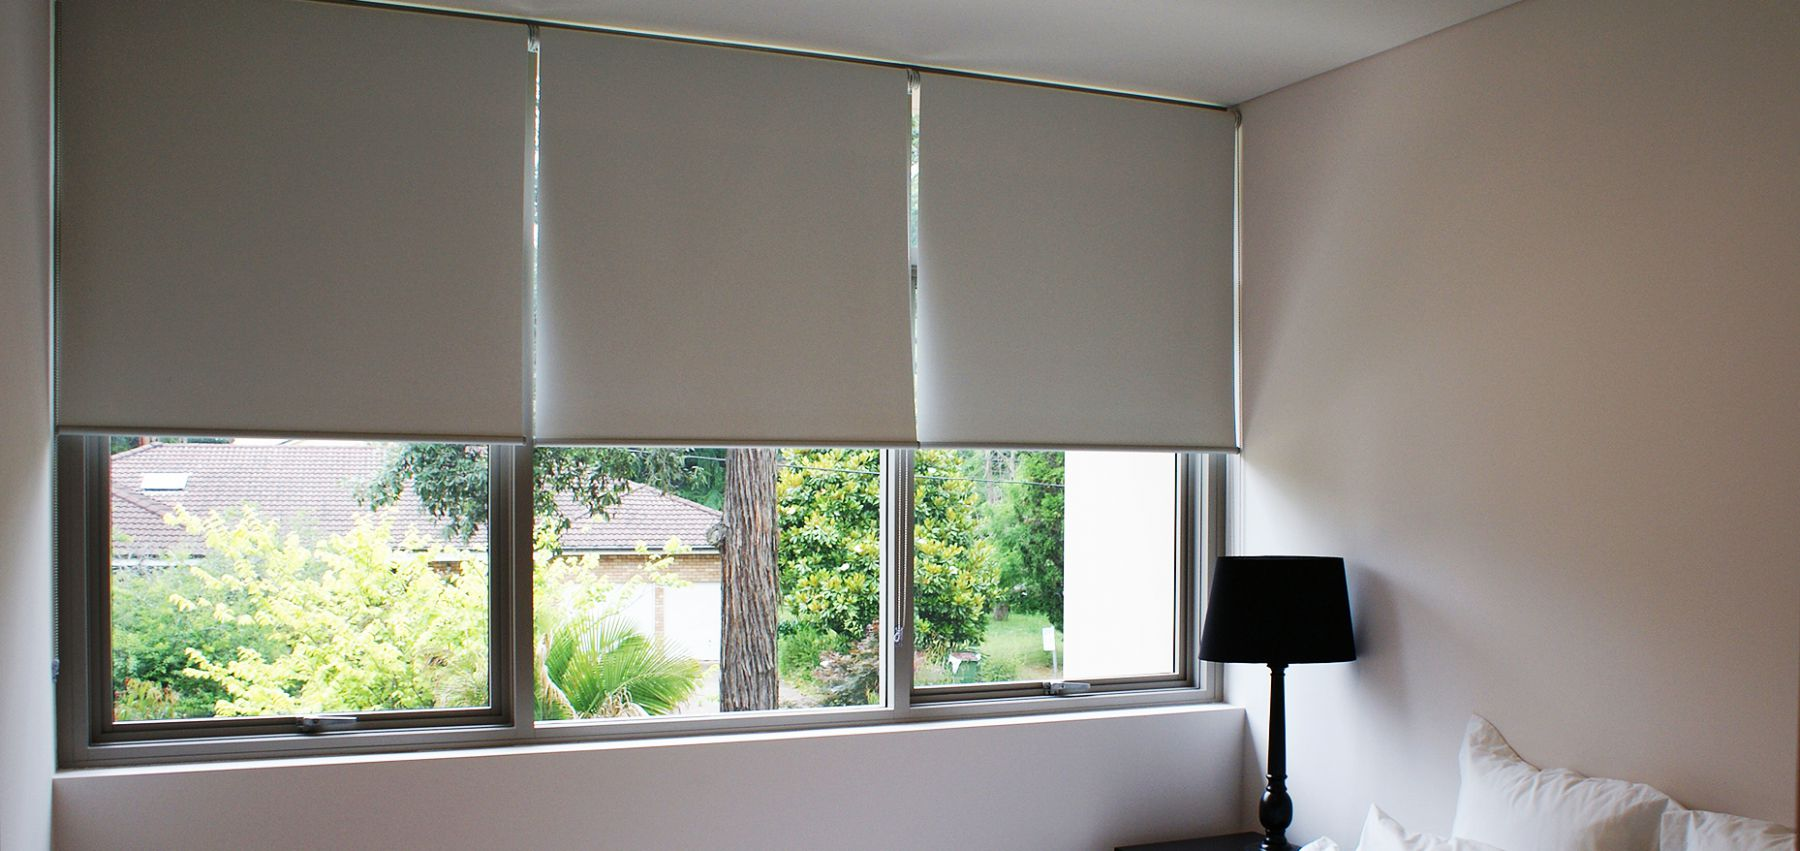 and roller quotes dual at prices blinds free with blind affordable cassette